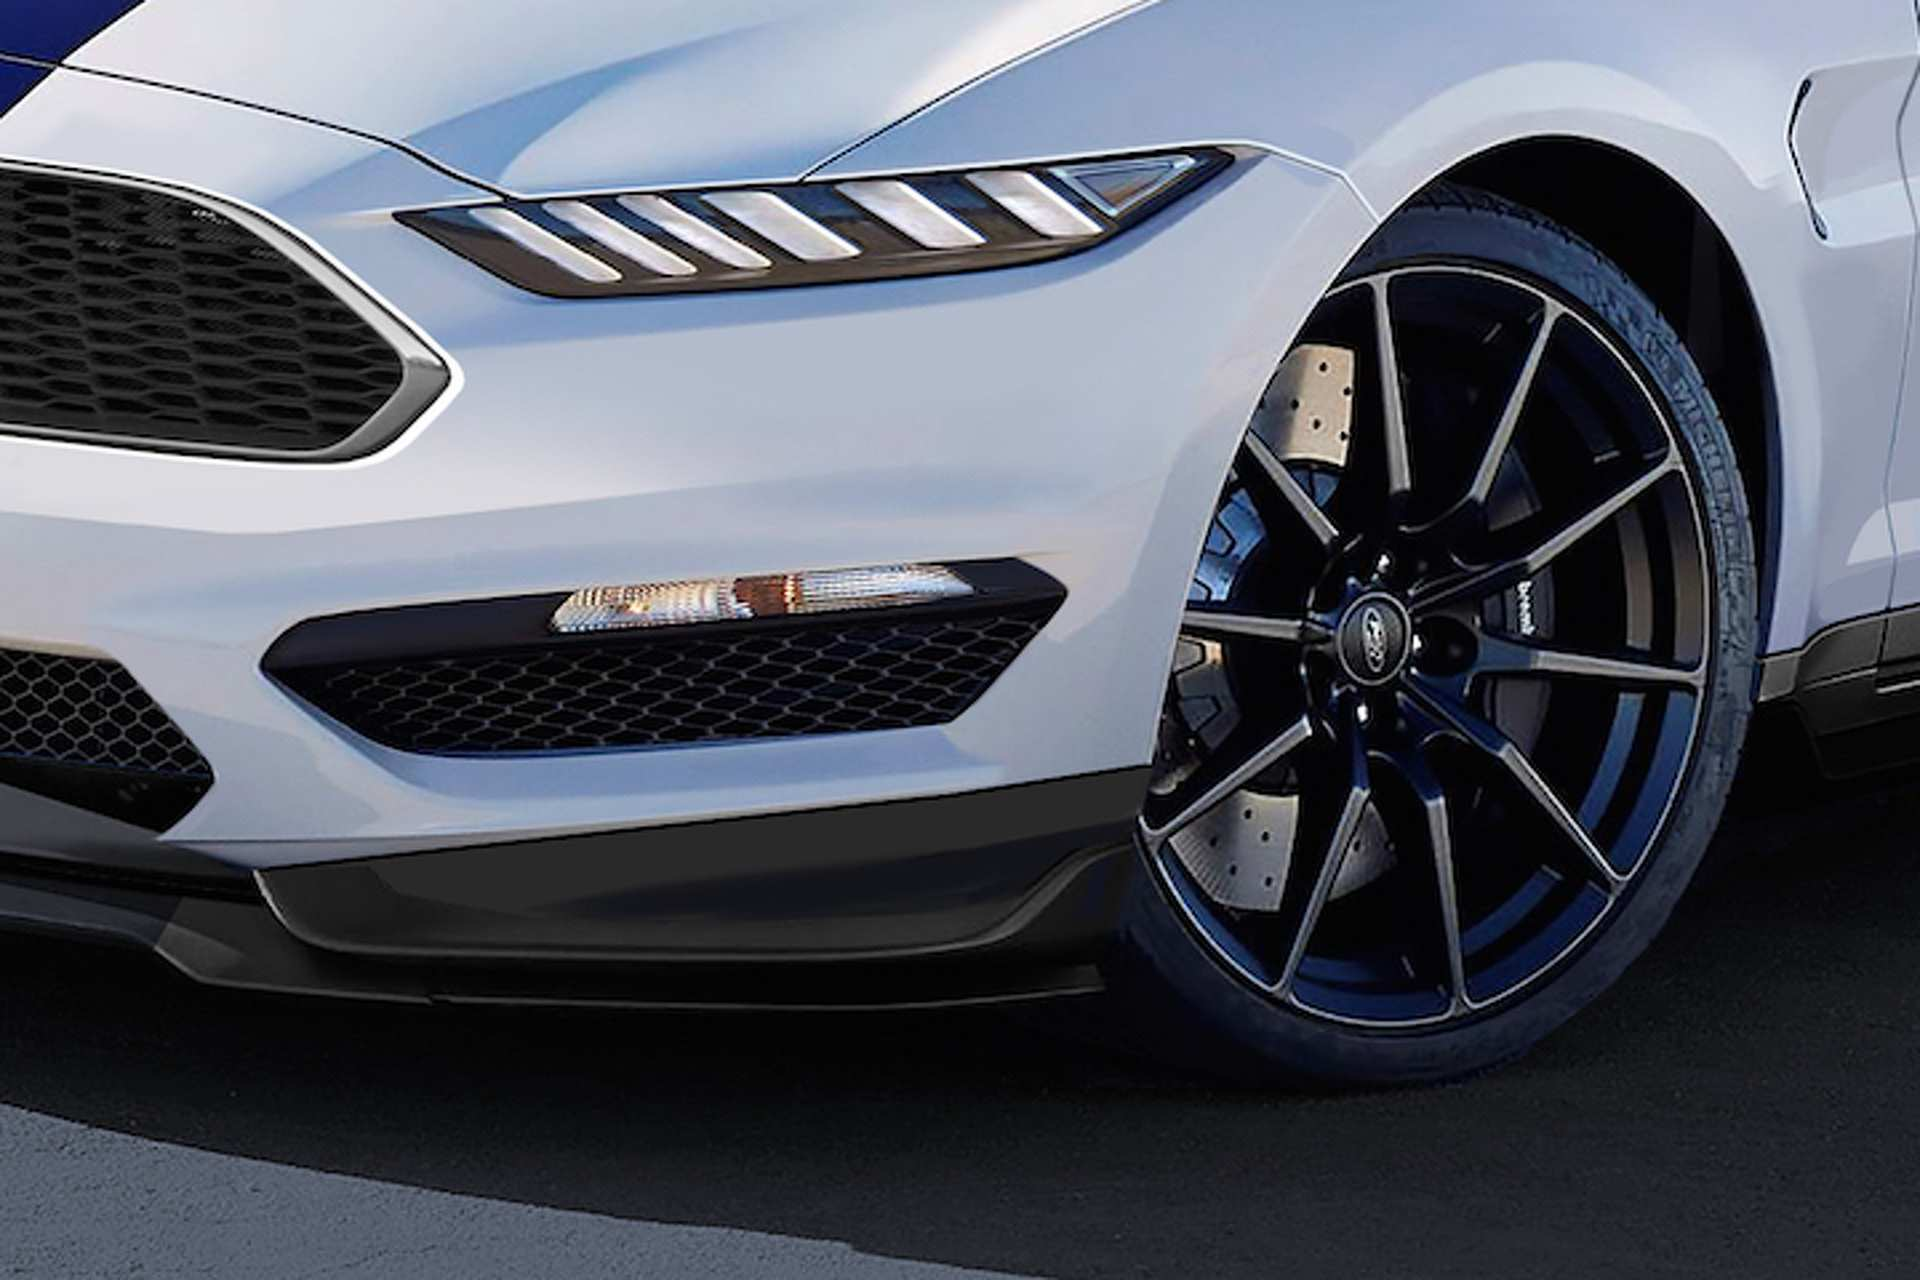 23 New 2020 Ford Mustang Images Spy Shoot for 2020 Ford Mustang Images